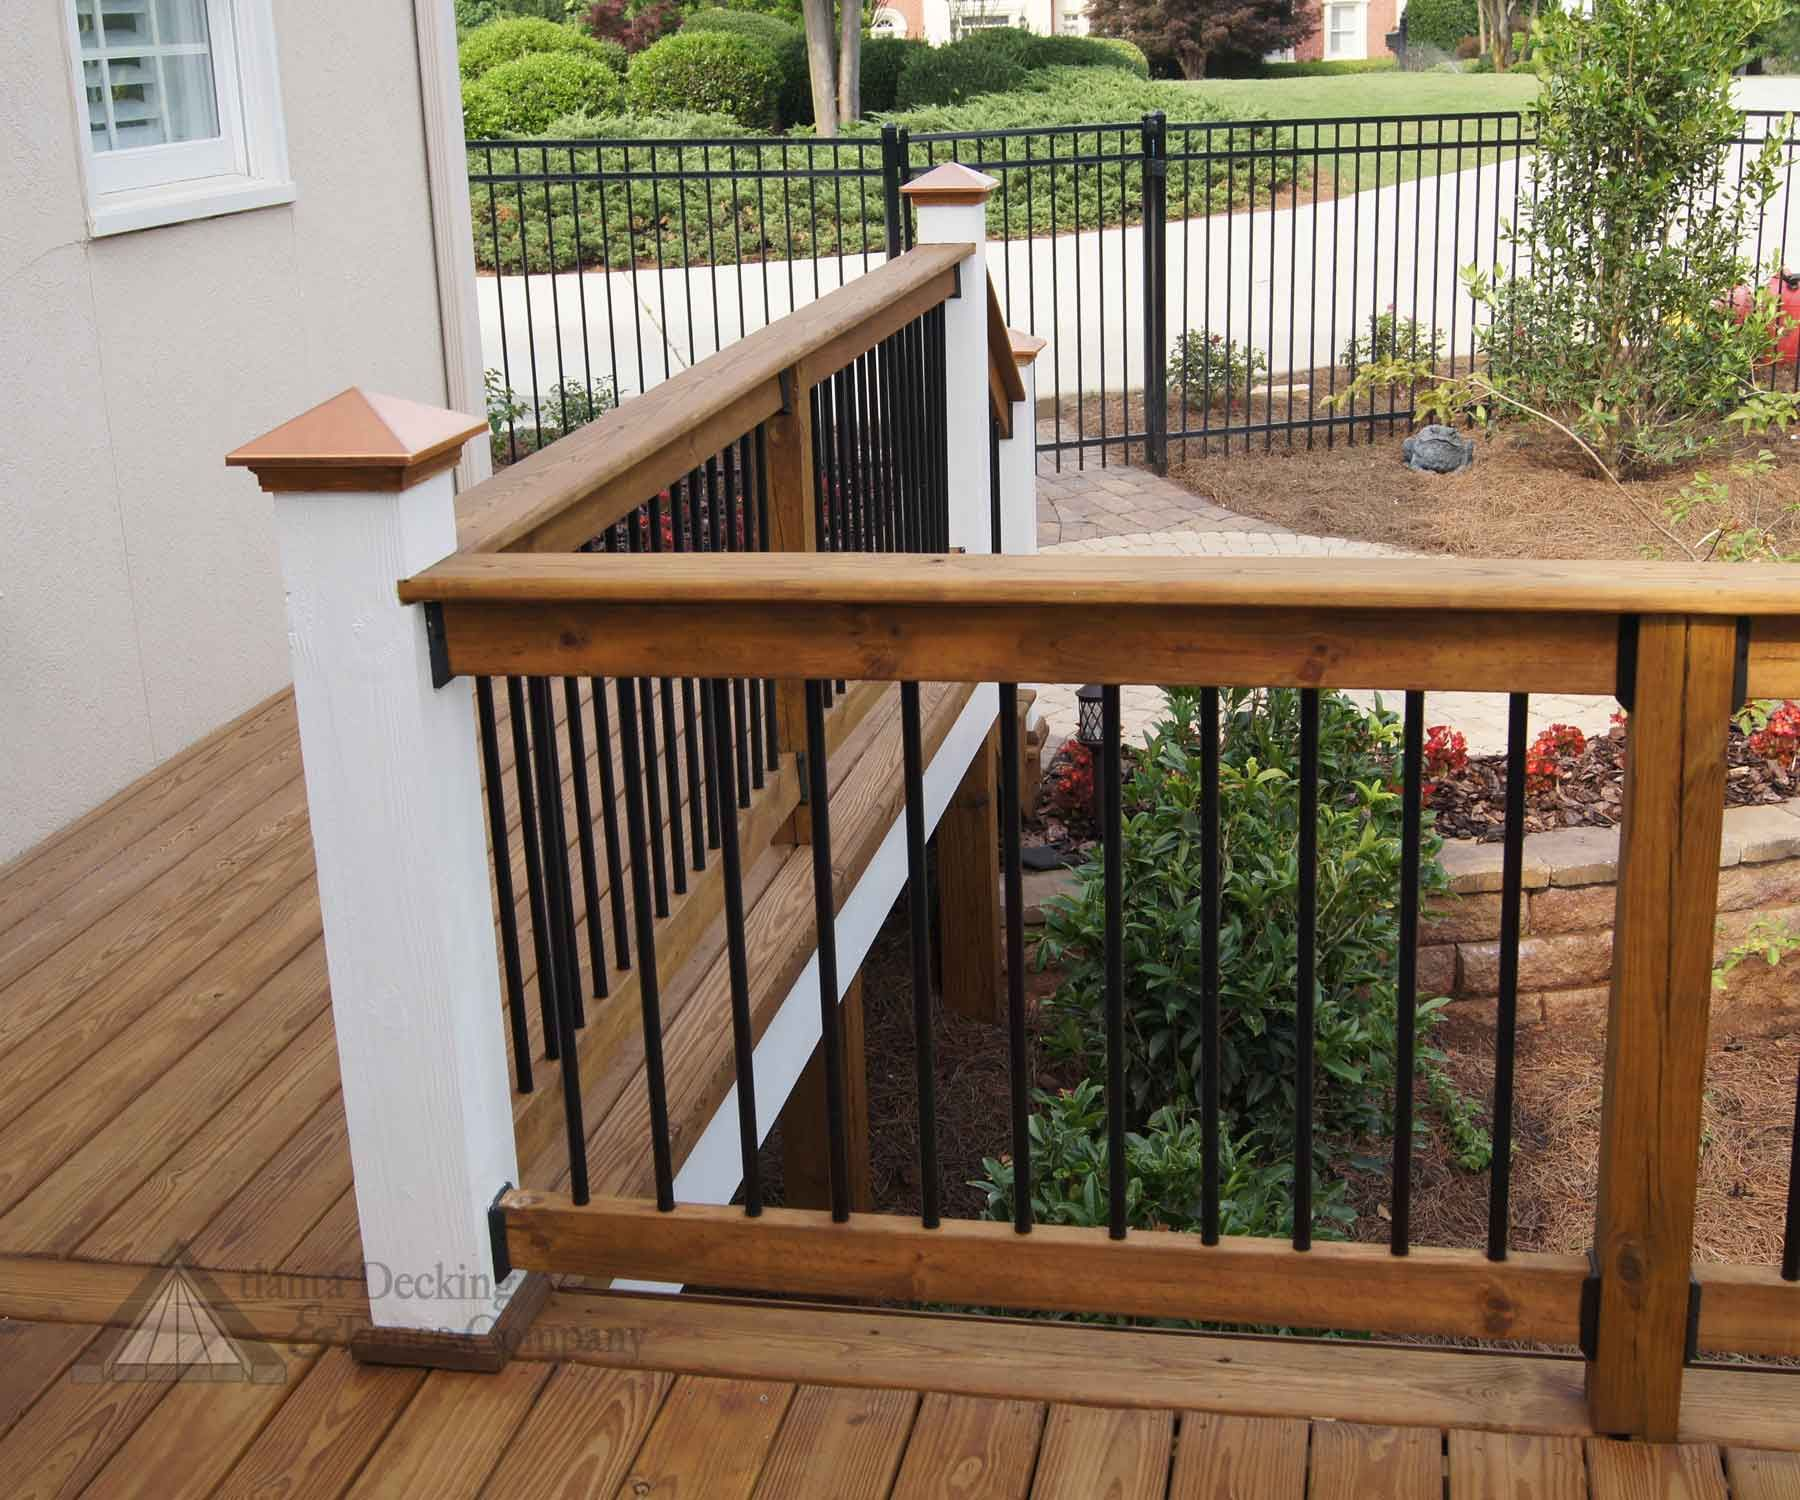 Modern handrail outdoor wallpaper deck railing ideas for Garden decking banister